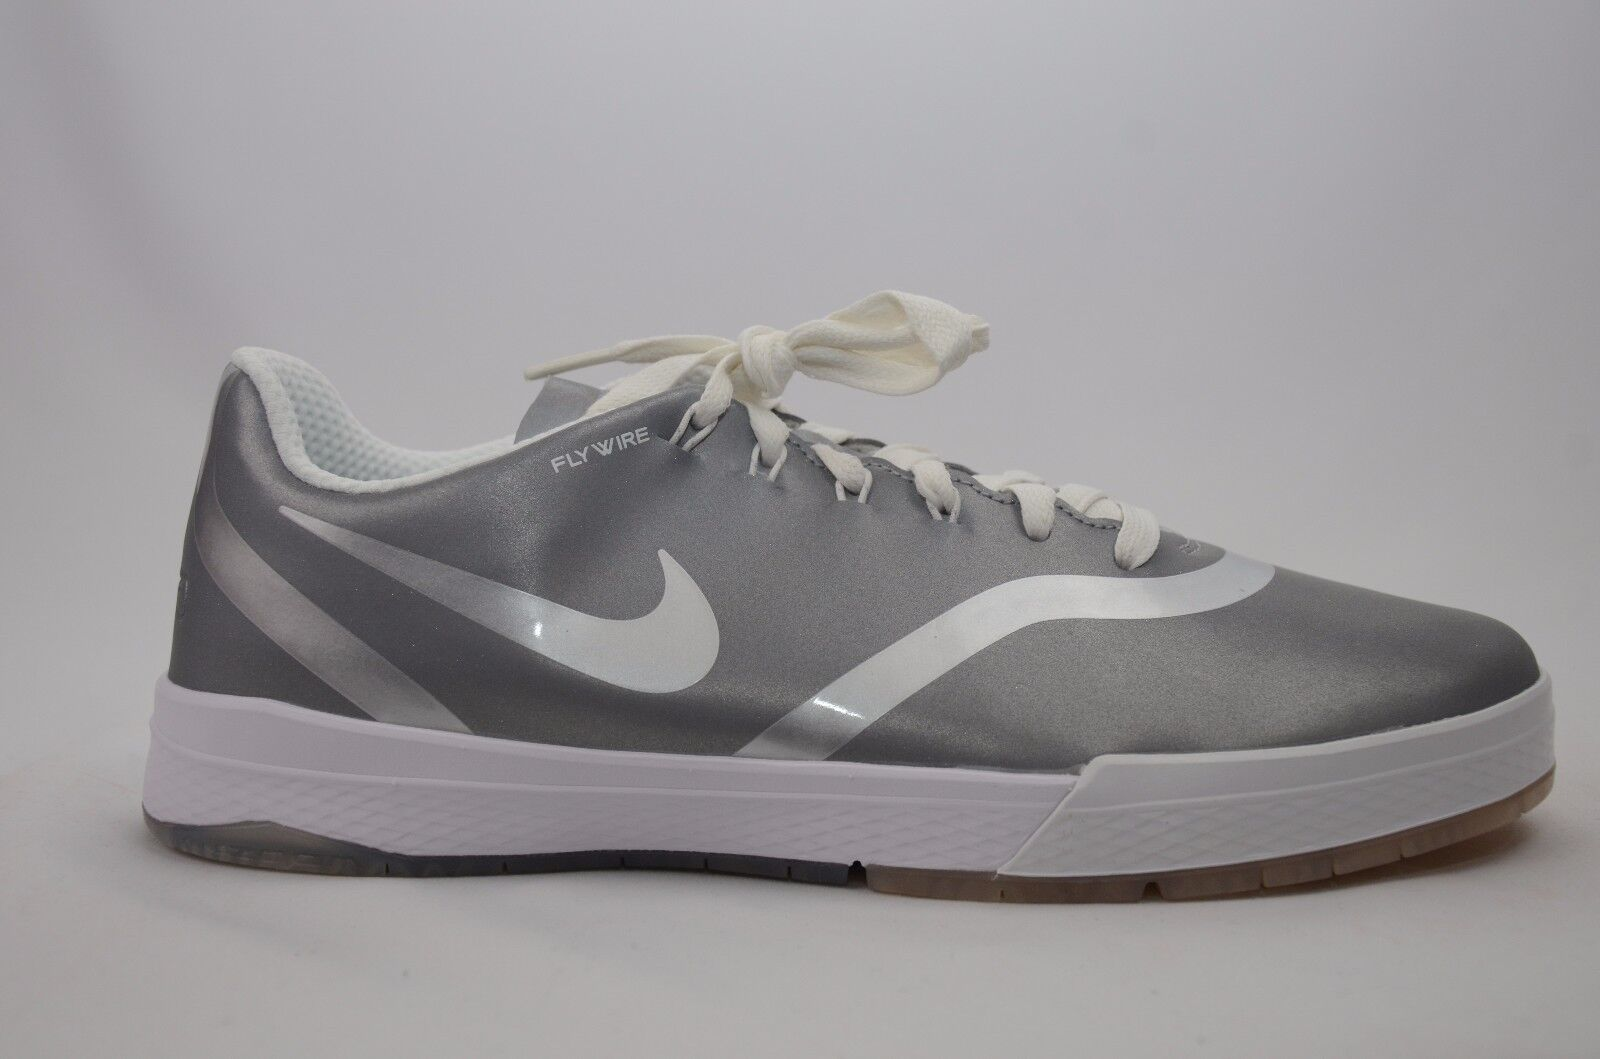 Nike Paul Rodriguez 9 Elite T Silver Men's Size 8-12 New in Box 833902 002